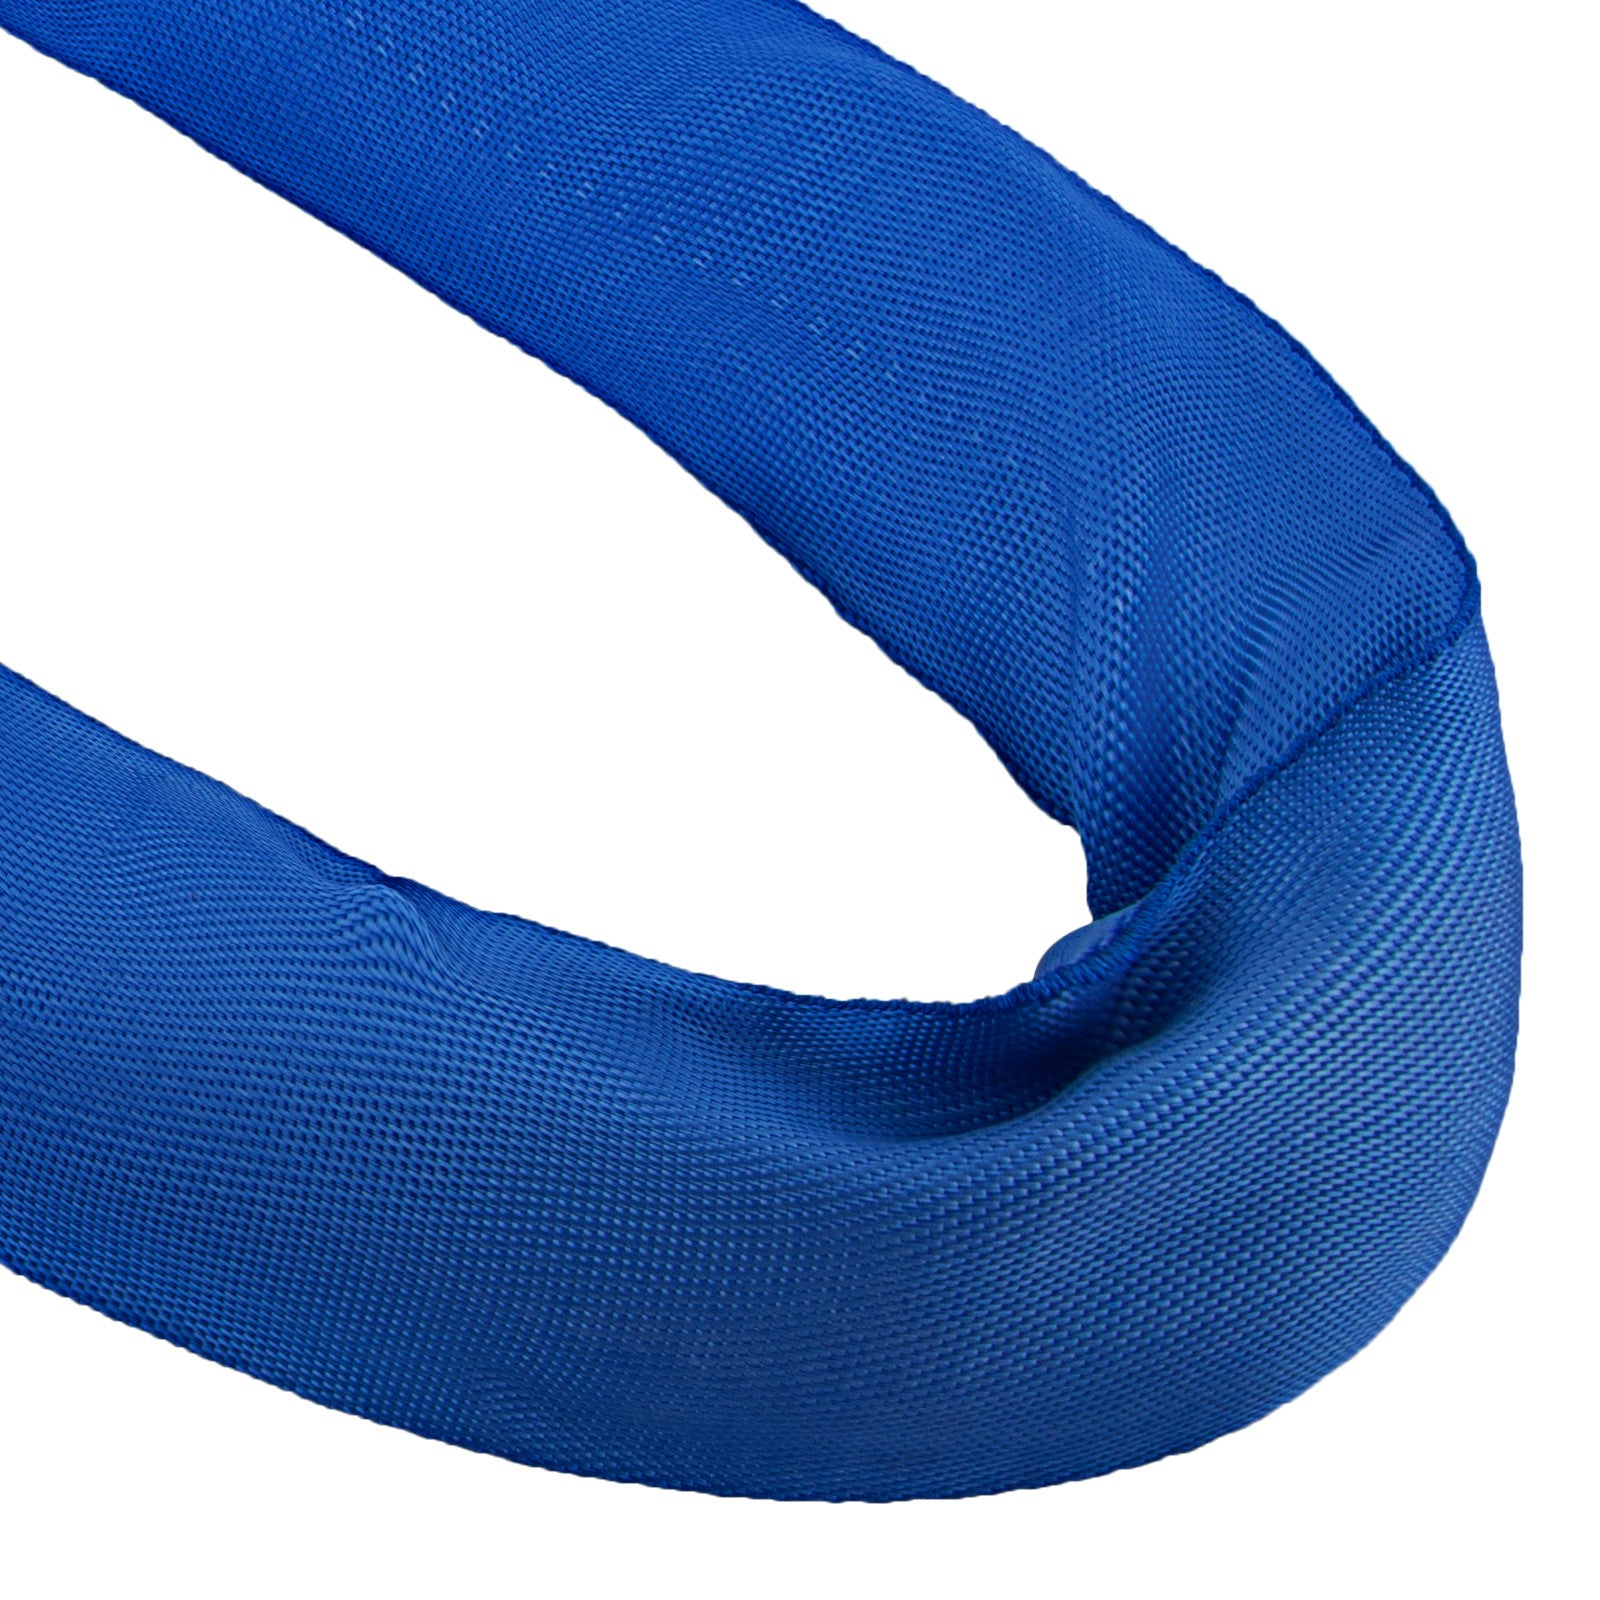 9.8ft Perimeter 17600lbs Endless Round Lifting Sling Steel Strap Industrial